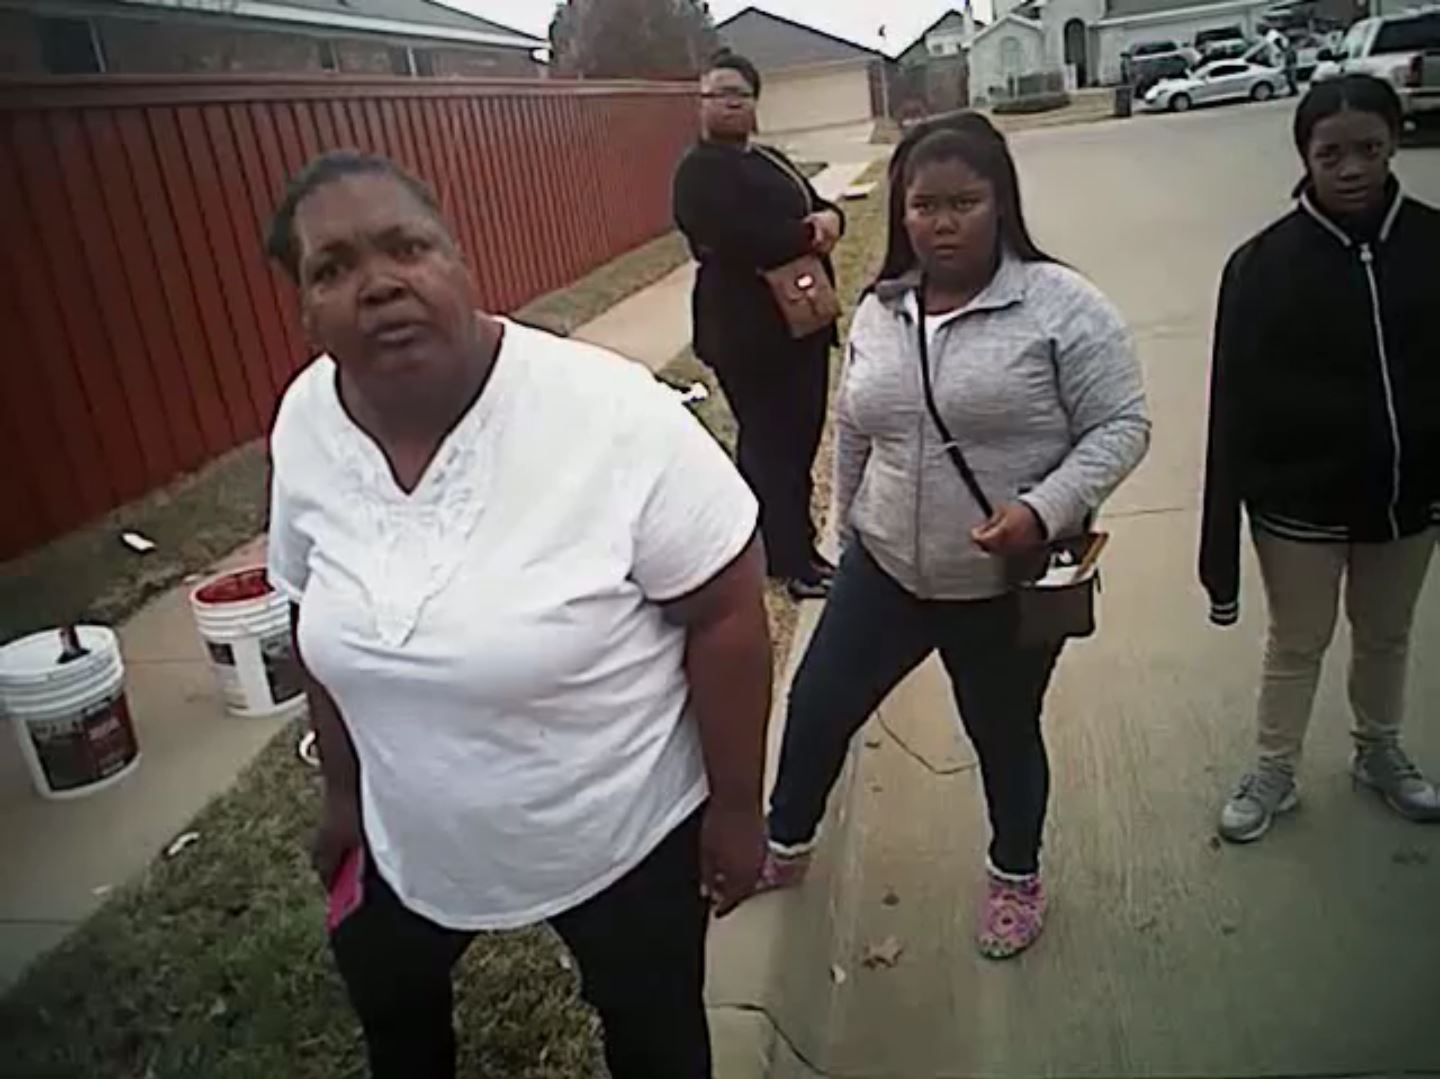 charges dropped against fort worth mother after police bodycam video surfaces houston public media. Black Bedroom Furniture Sets. Home Design Ideas